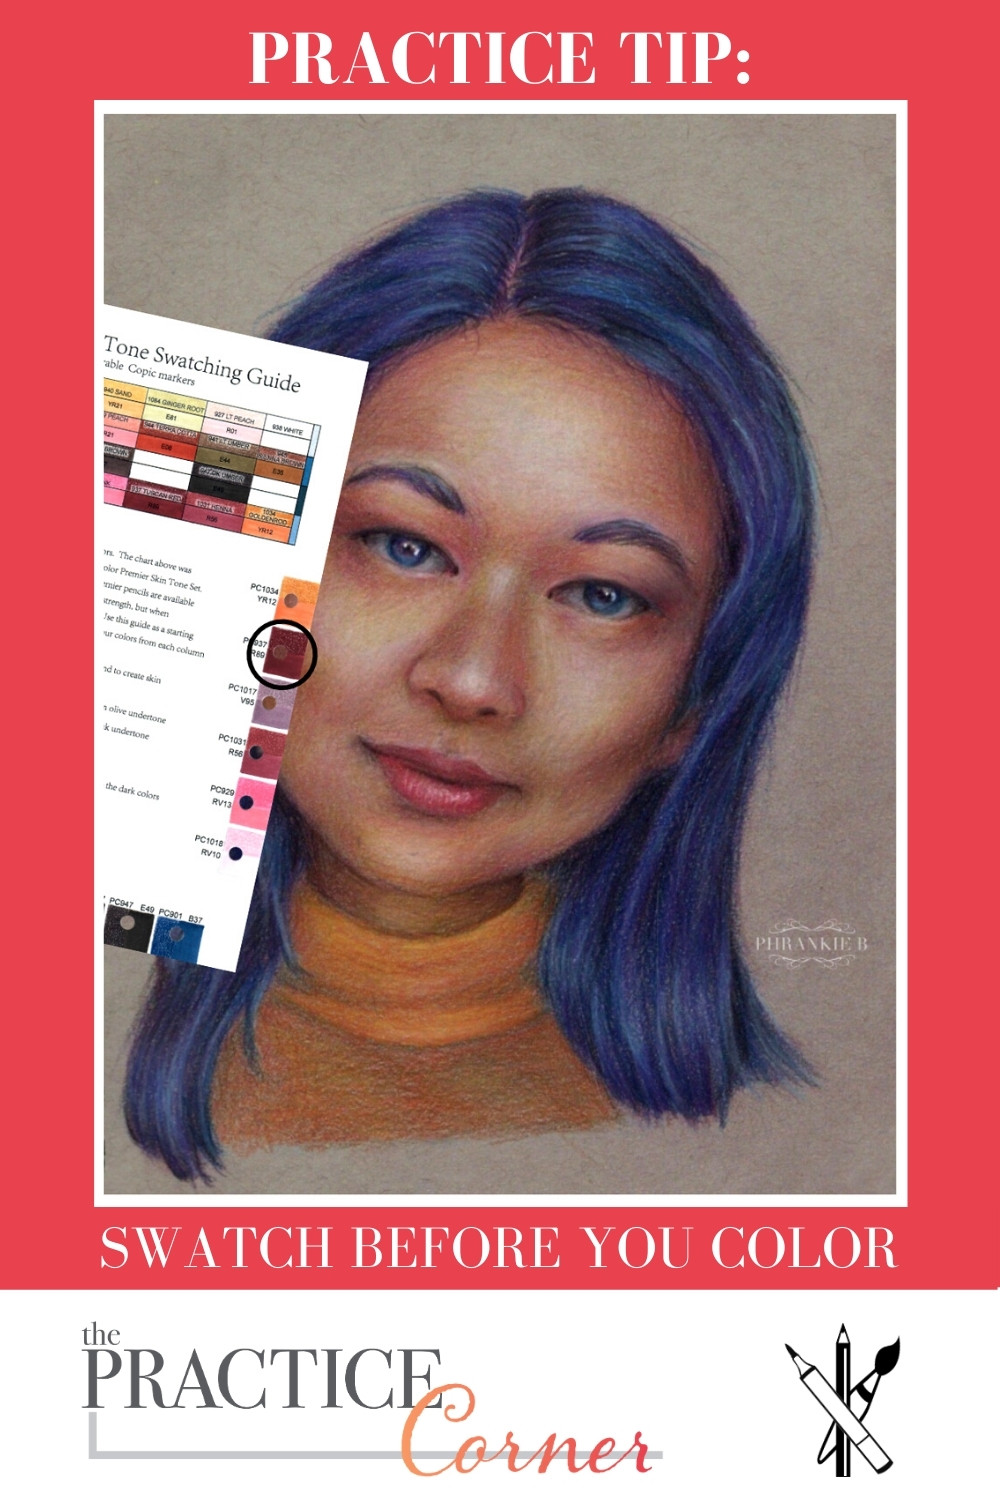 Determine your color palette before you start your coloring. | The Practice Corner | #coloredpencilpractice #copicmarkerpractice #swatchcolors #measureyourprogress